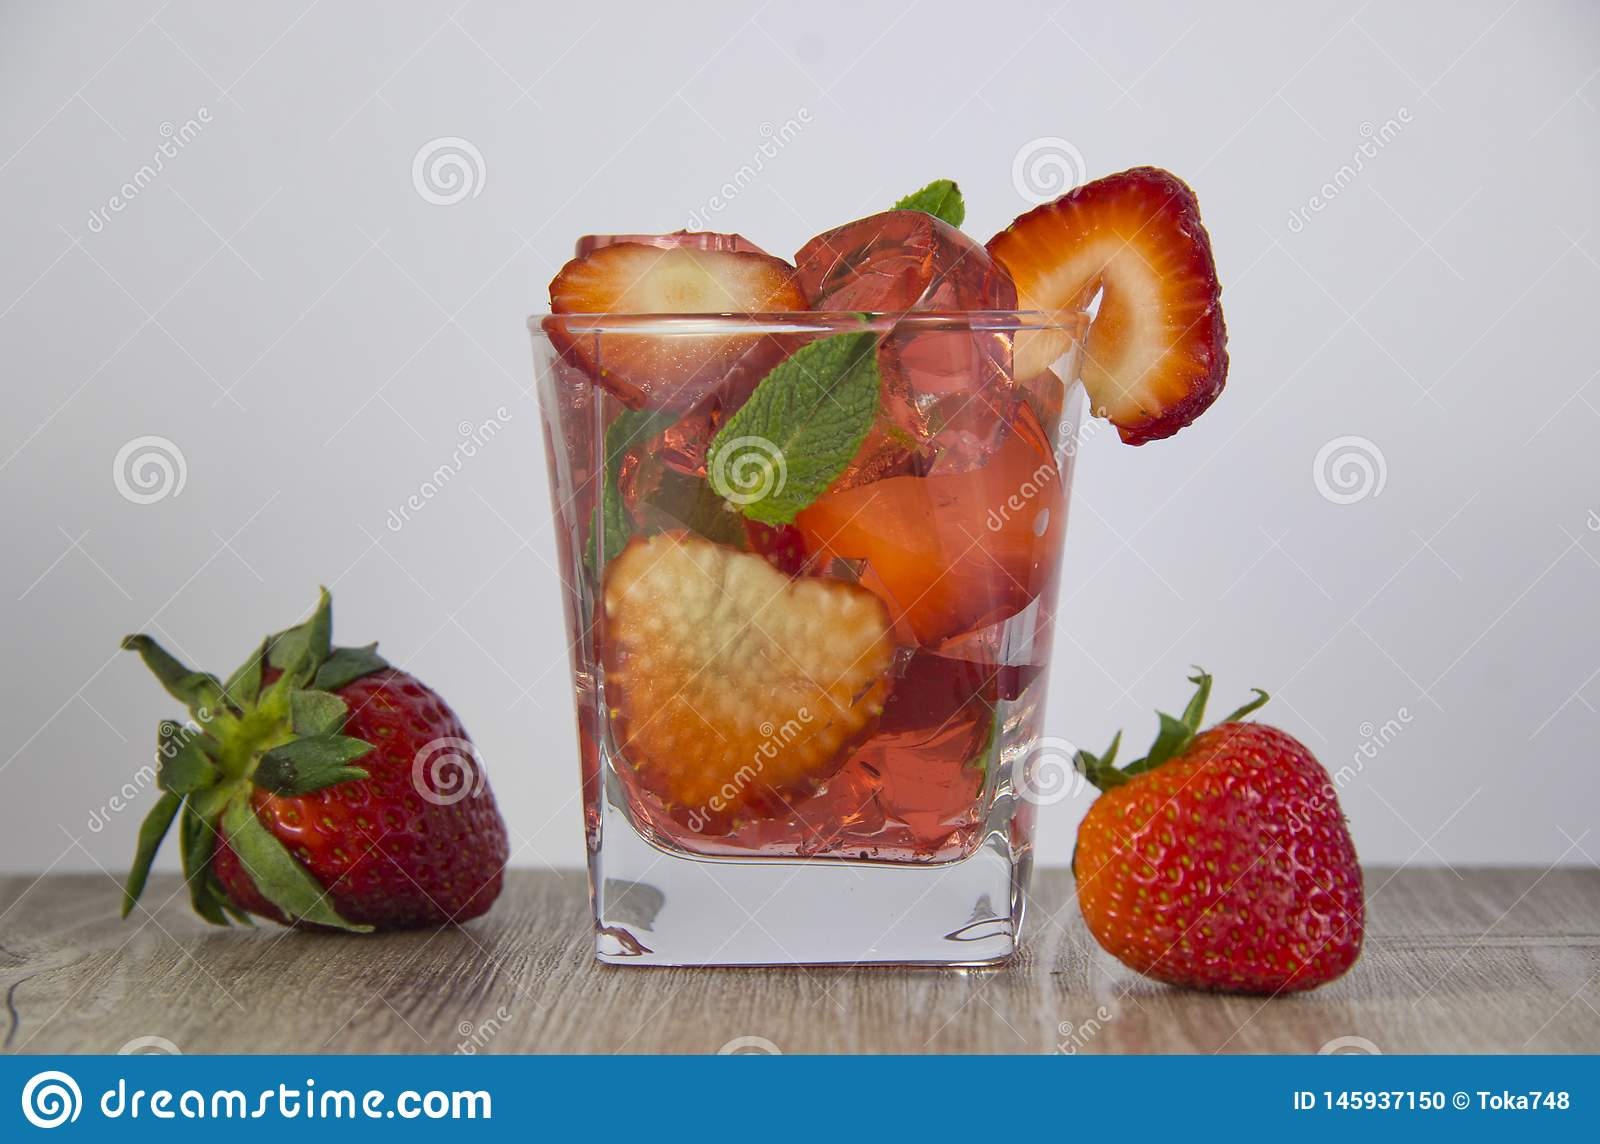 Jelly from strawberry juice with the addition of fresh berries.